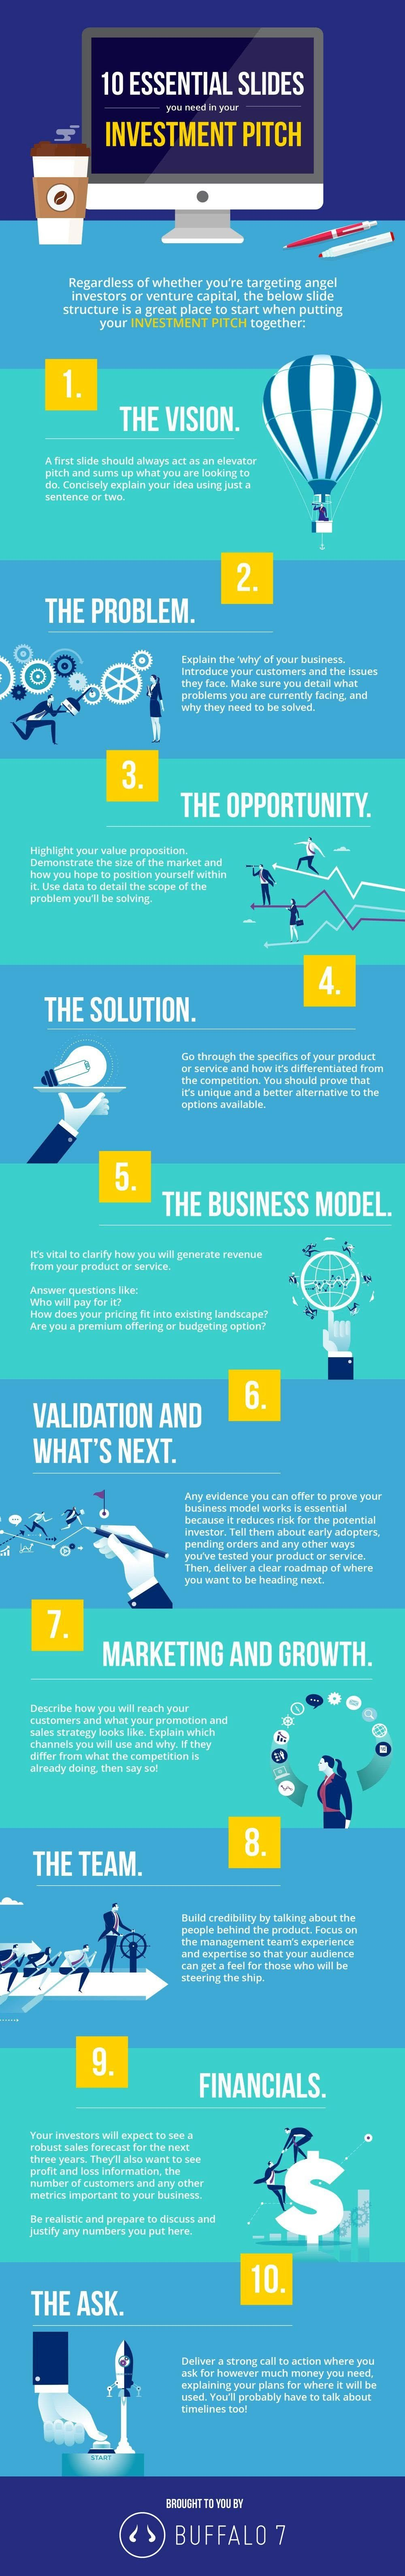 The 10 Things You Should Cover in Every Investment Pitch #infographic